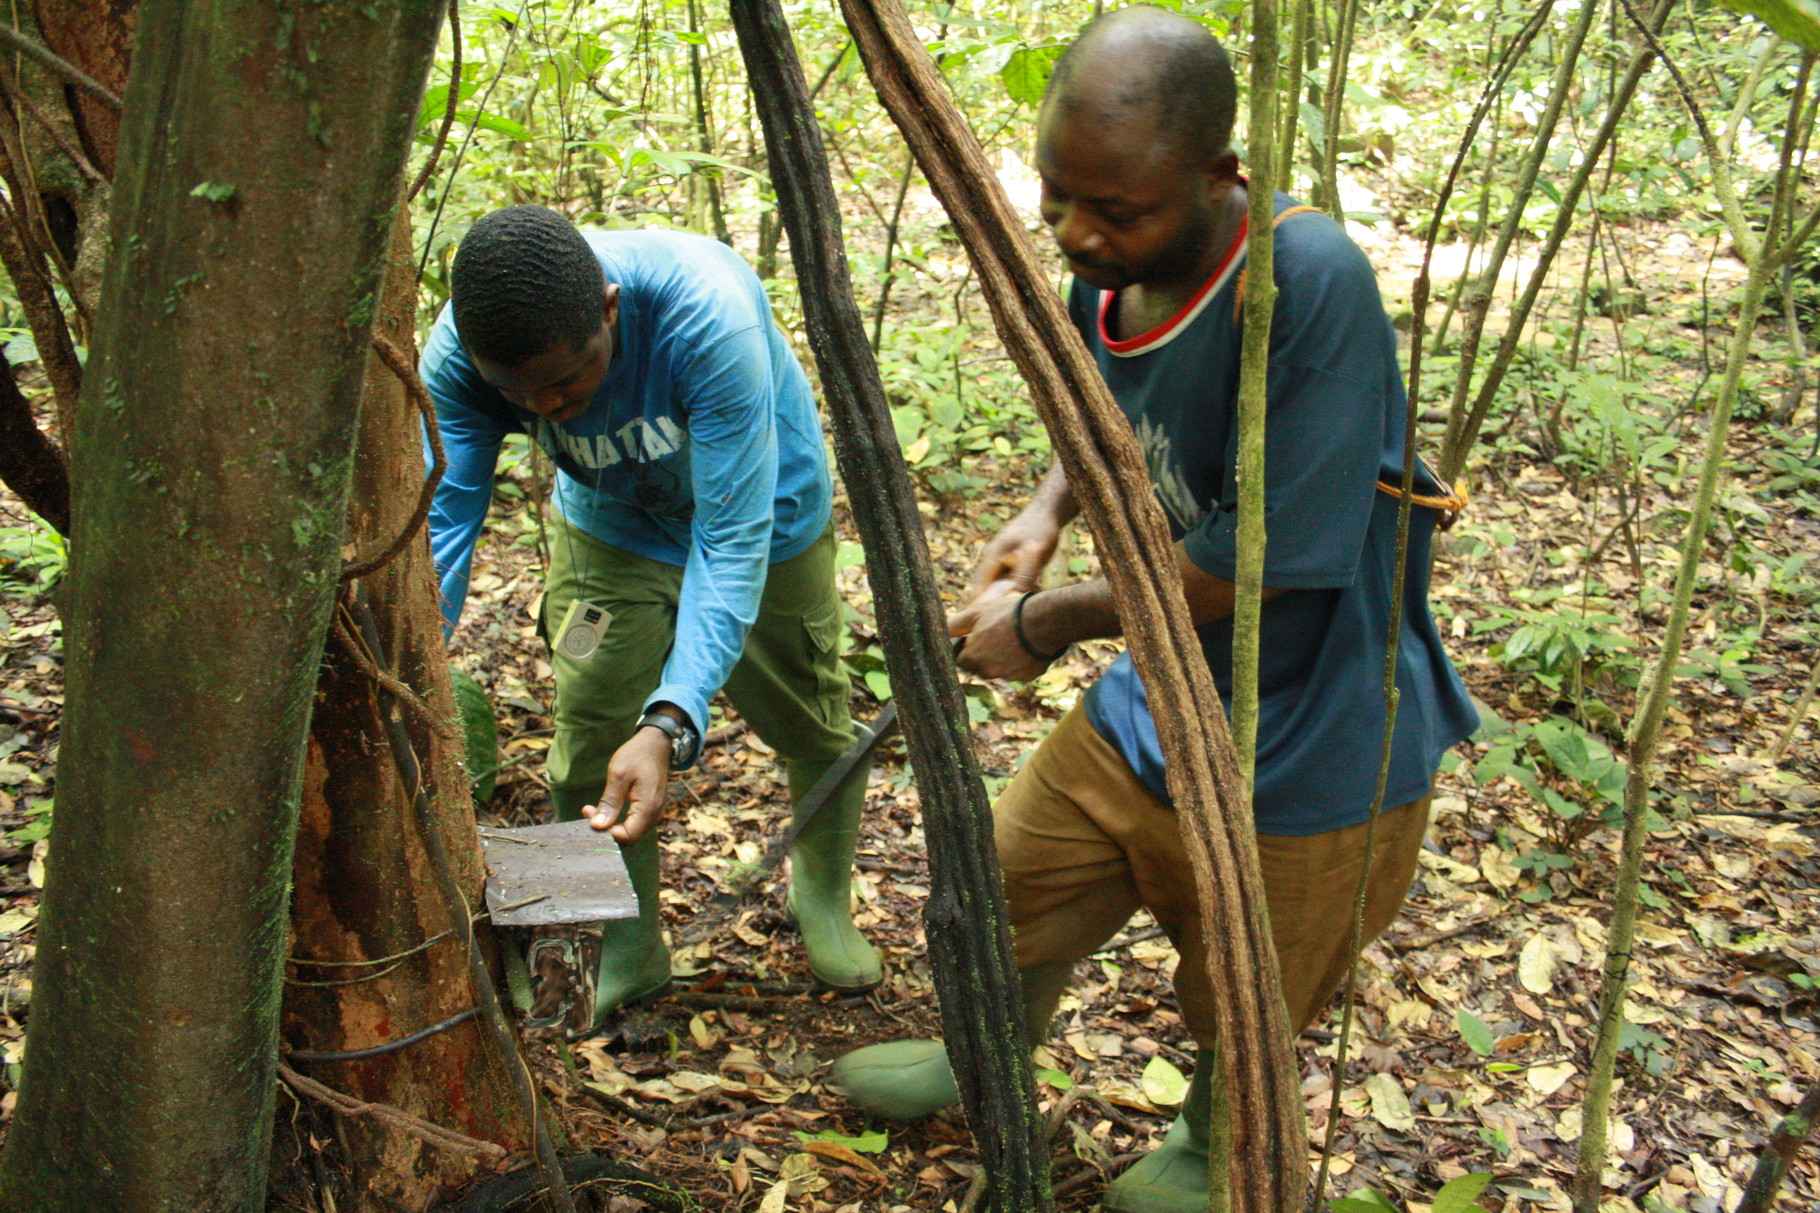 Setting up camera traps